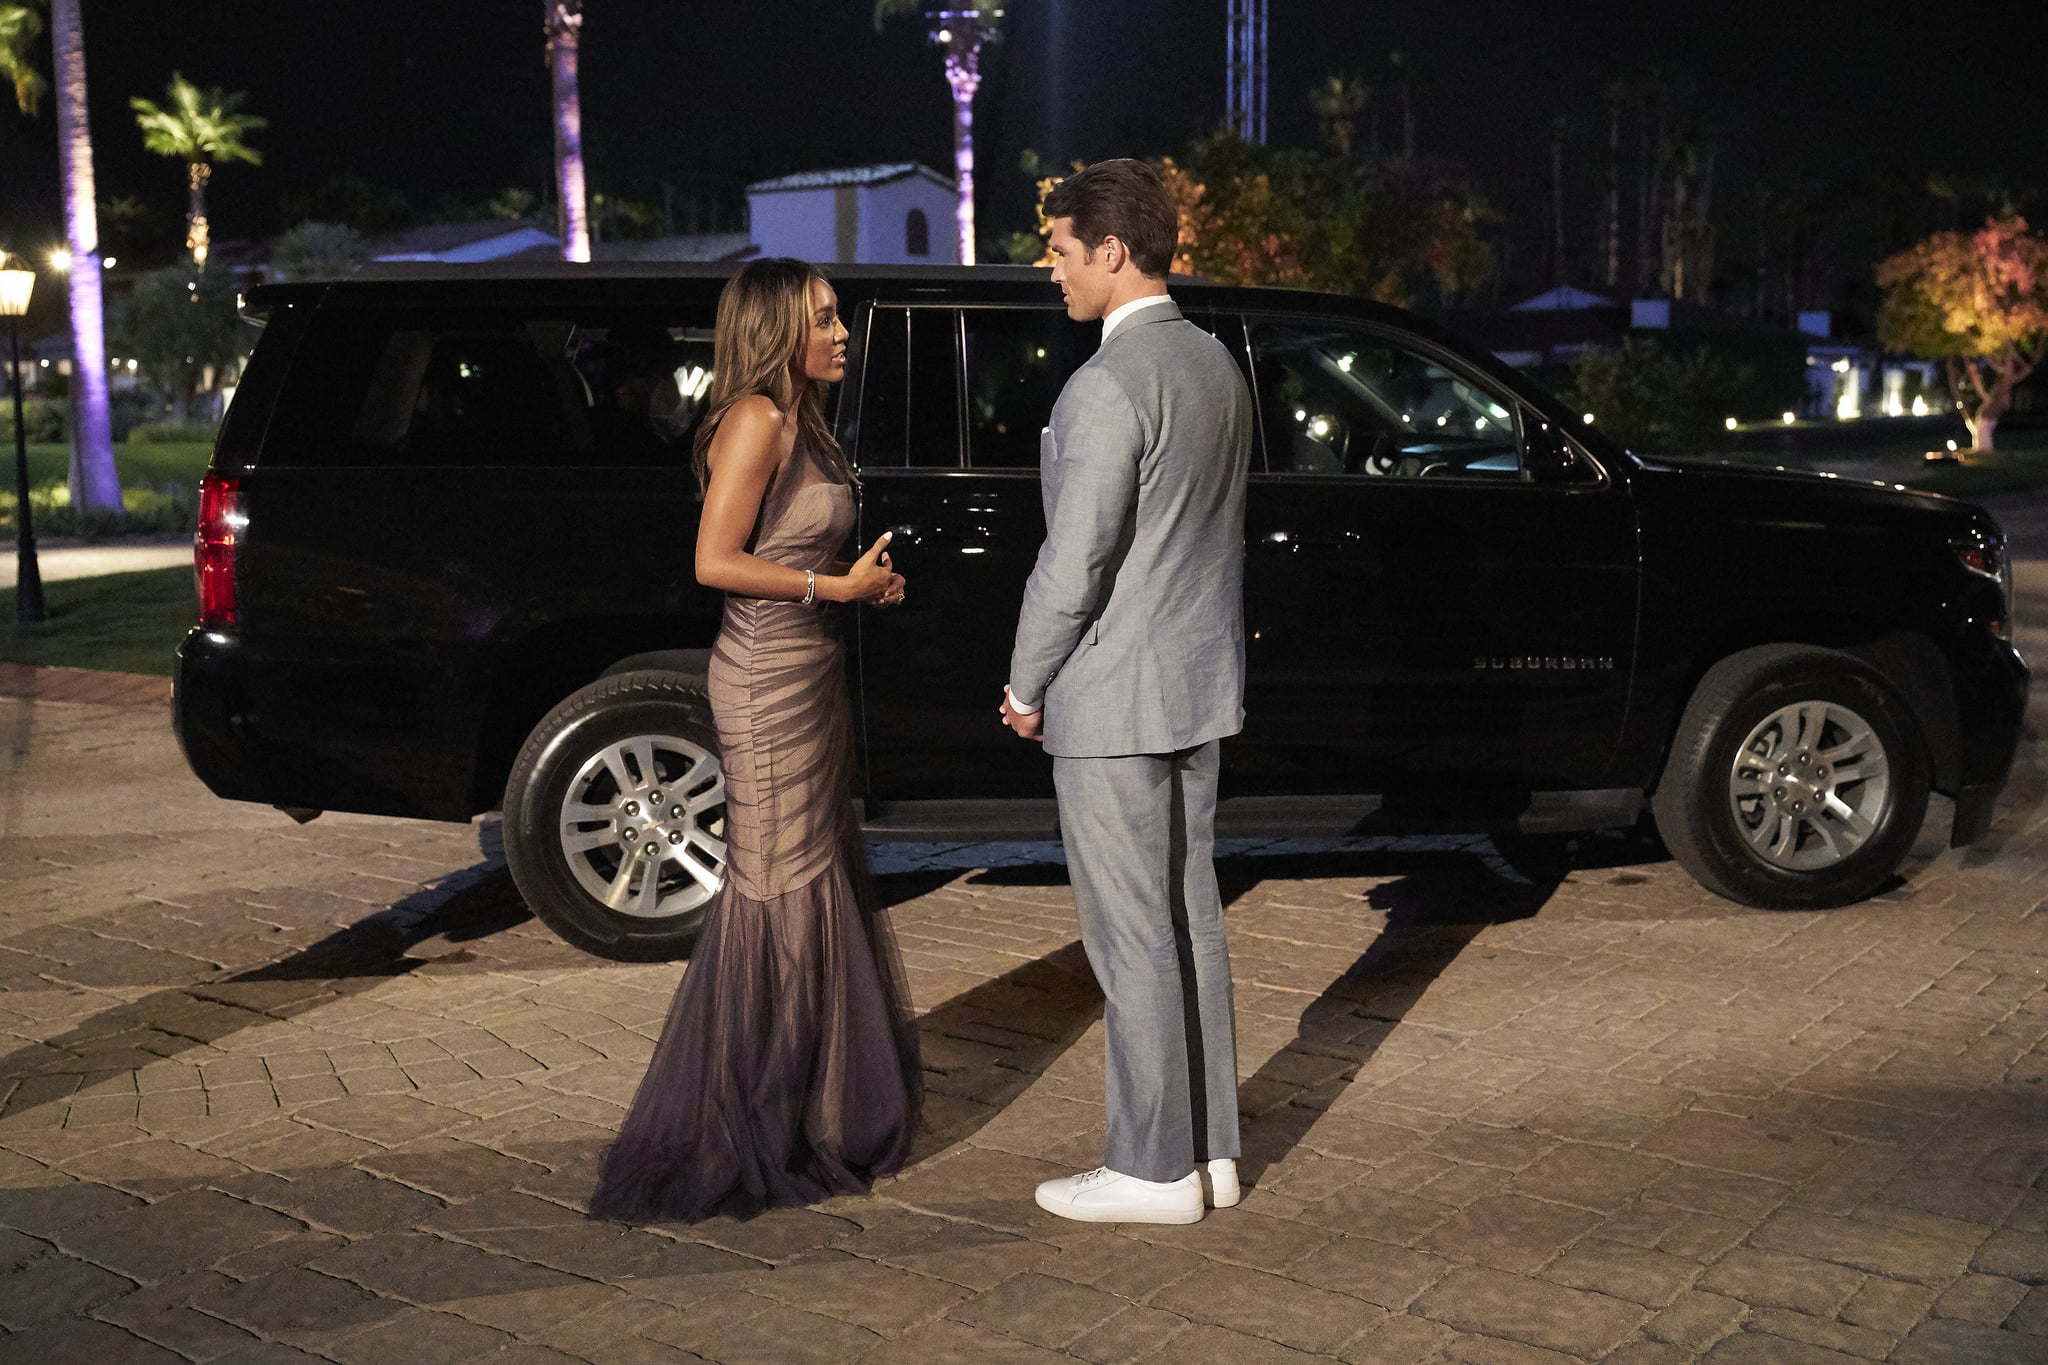 THE BACHELORETTE - 1609  The drama rages on as Bennett and Noah continue to confront one another on the impromptu two-on-one date. JoJo ups the ante by explaining to the men that a rose this week will be their ticket to a hometown date and an opportunity to introduce Tayshia to their families. One mans one-on-one date starts as a fun scavenger hunt but evolves into a more serious discussion when he shares a deeply emotional secret with the Bachelorette that he hasnt revealed to anyone else. Honesty is at the top of Tayshias list for a soul mate, and she puts five men through a high-pressure lie detector date. After all the confessions, there is one more shocking surprise at the end of the night that might turn her journey upside down on The Bachelorette, TUESDAY, DEC. 8 (8:00-10:01 p.m. EST), on ABC. (ABC/Craig Sjodin)TAYSHIA ADAMS, BENNETT